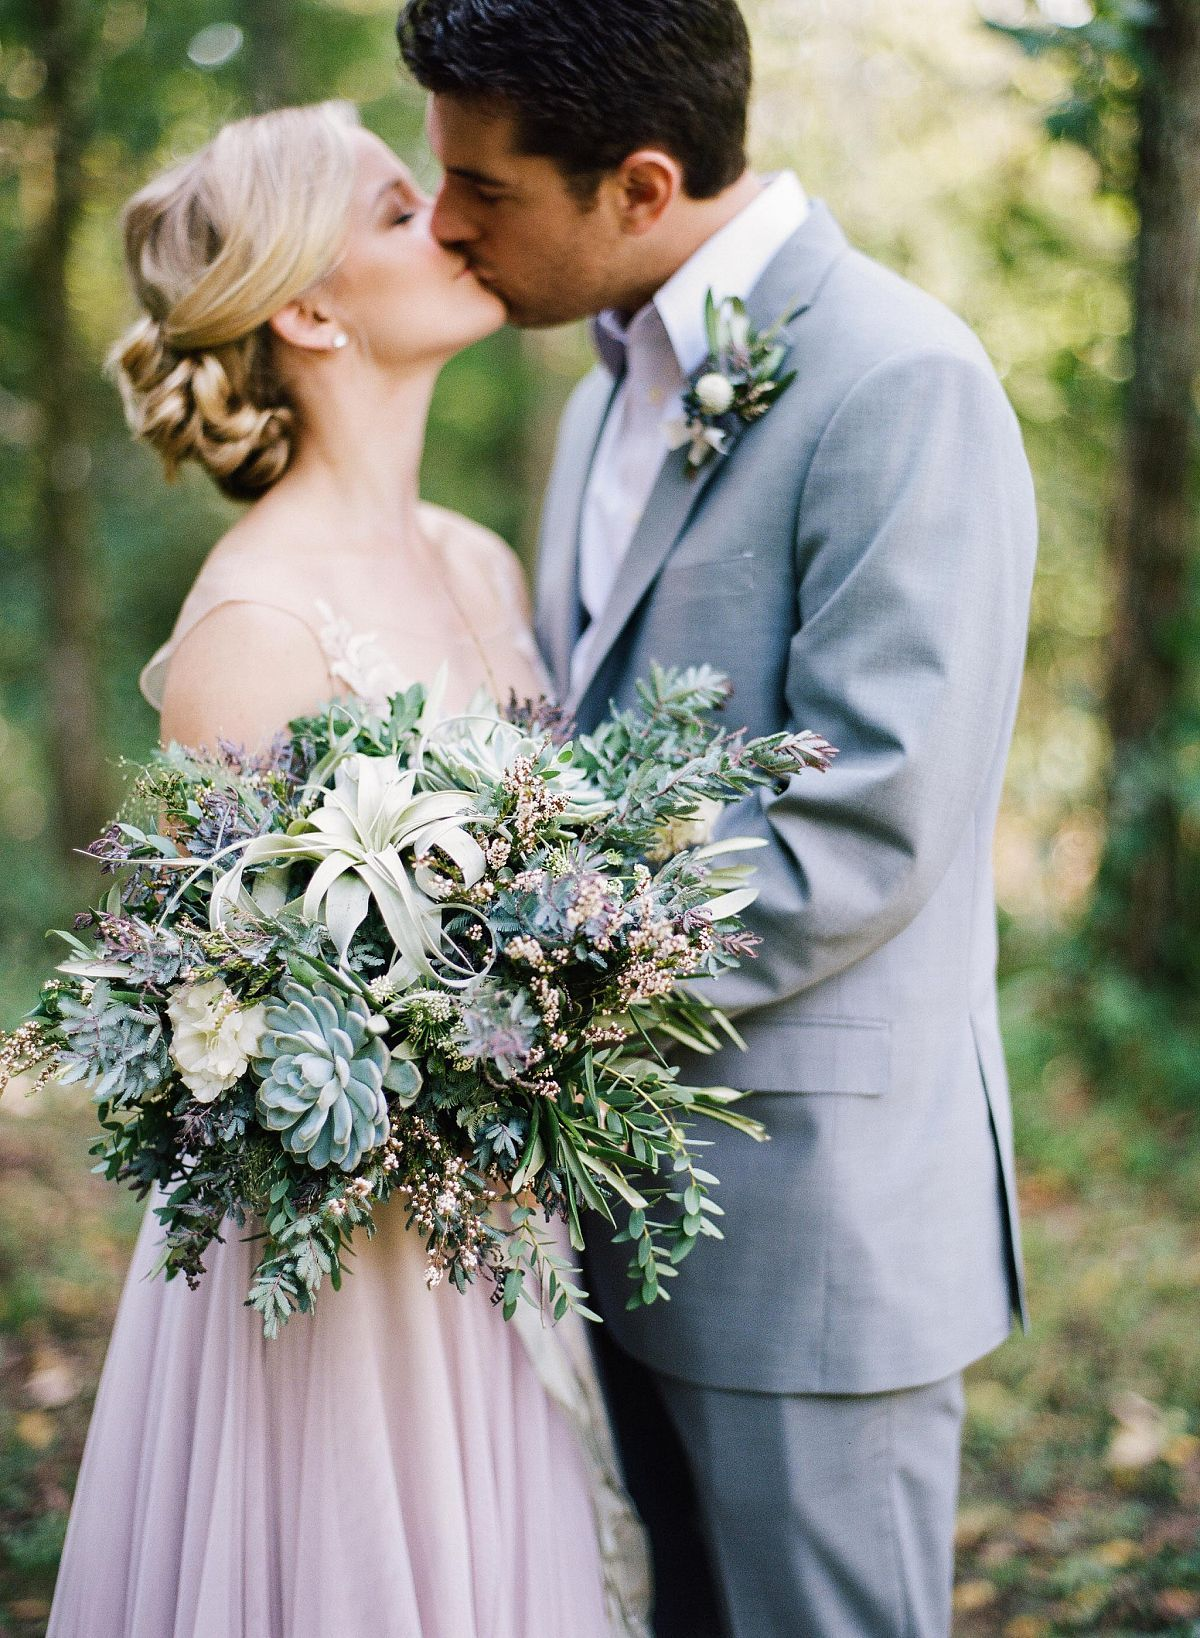 Elopement or traditional wedding a discussion bouquets